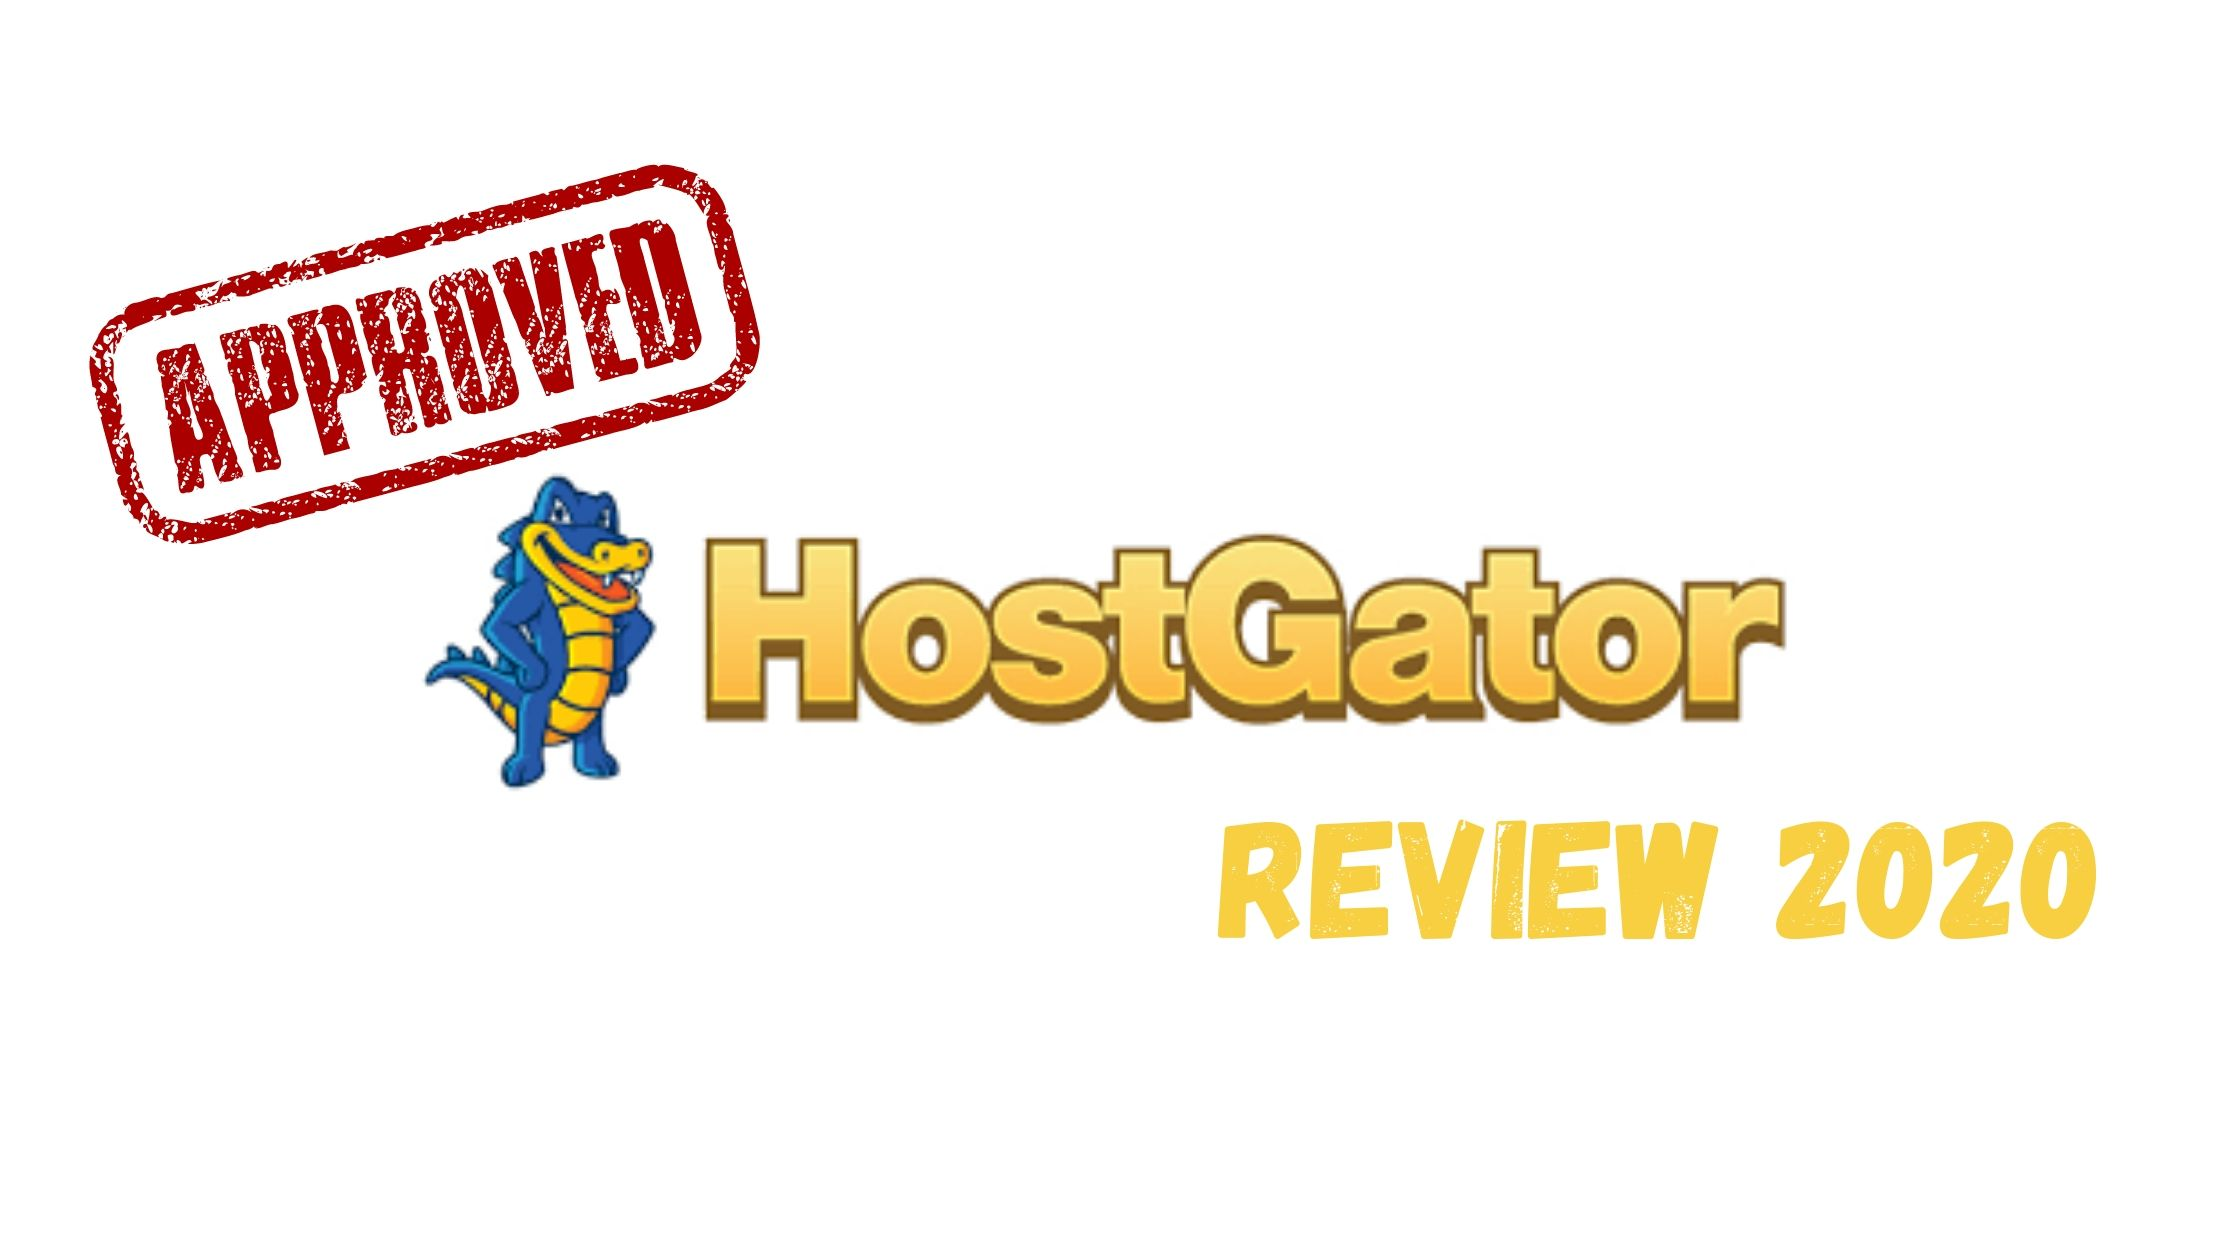 HostGator Review 2020